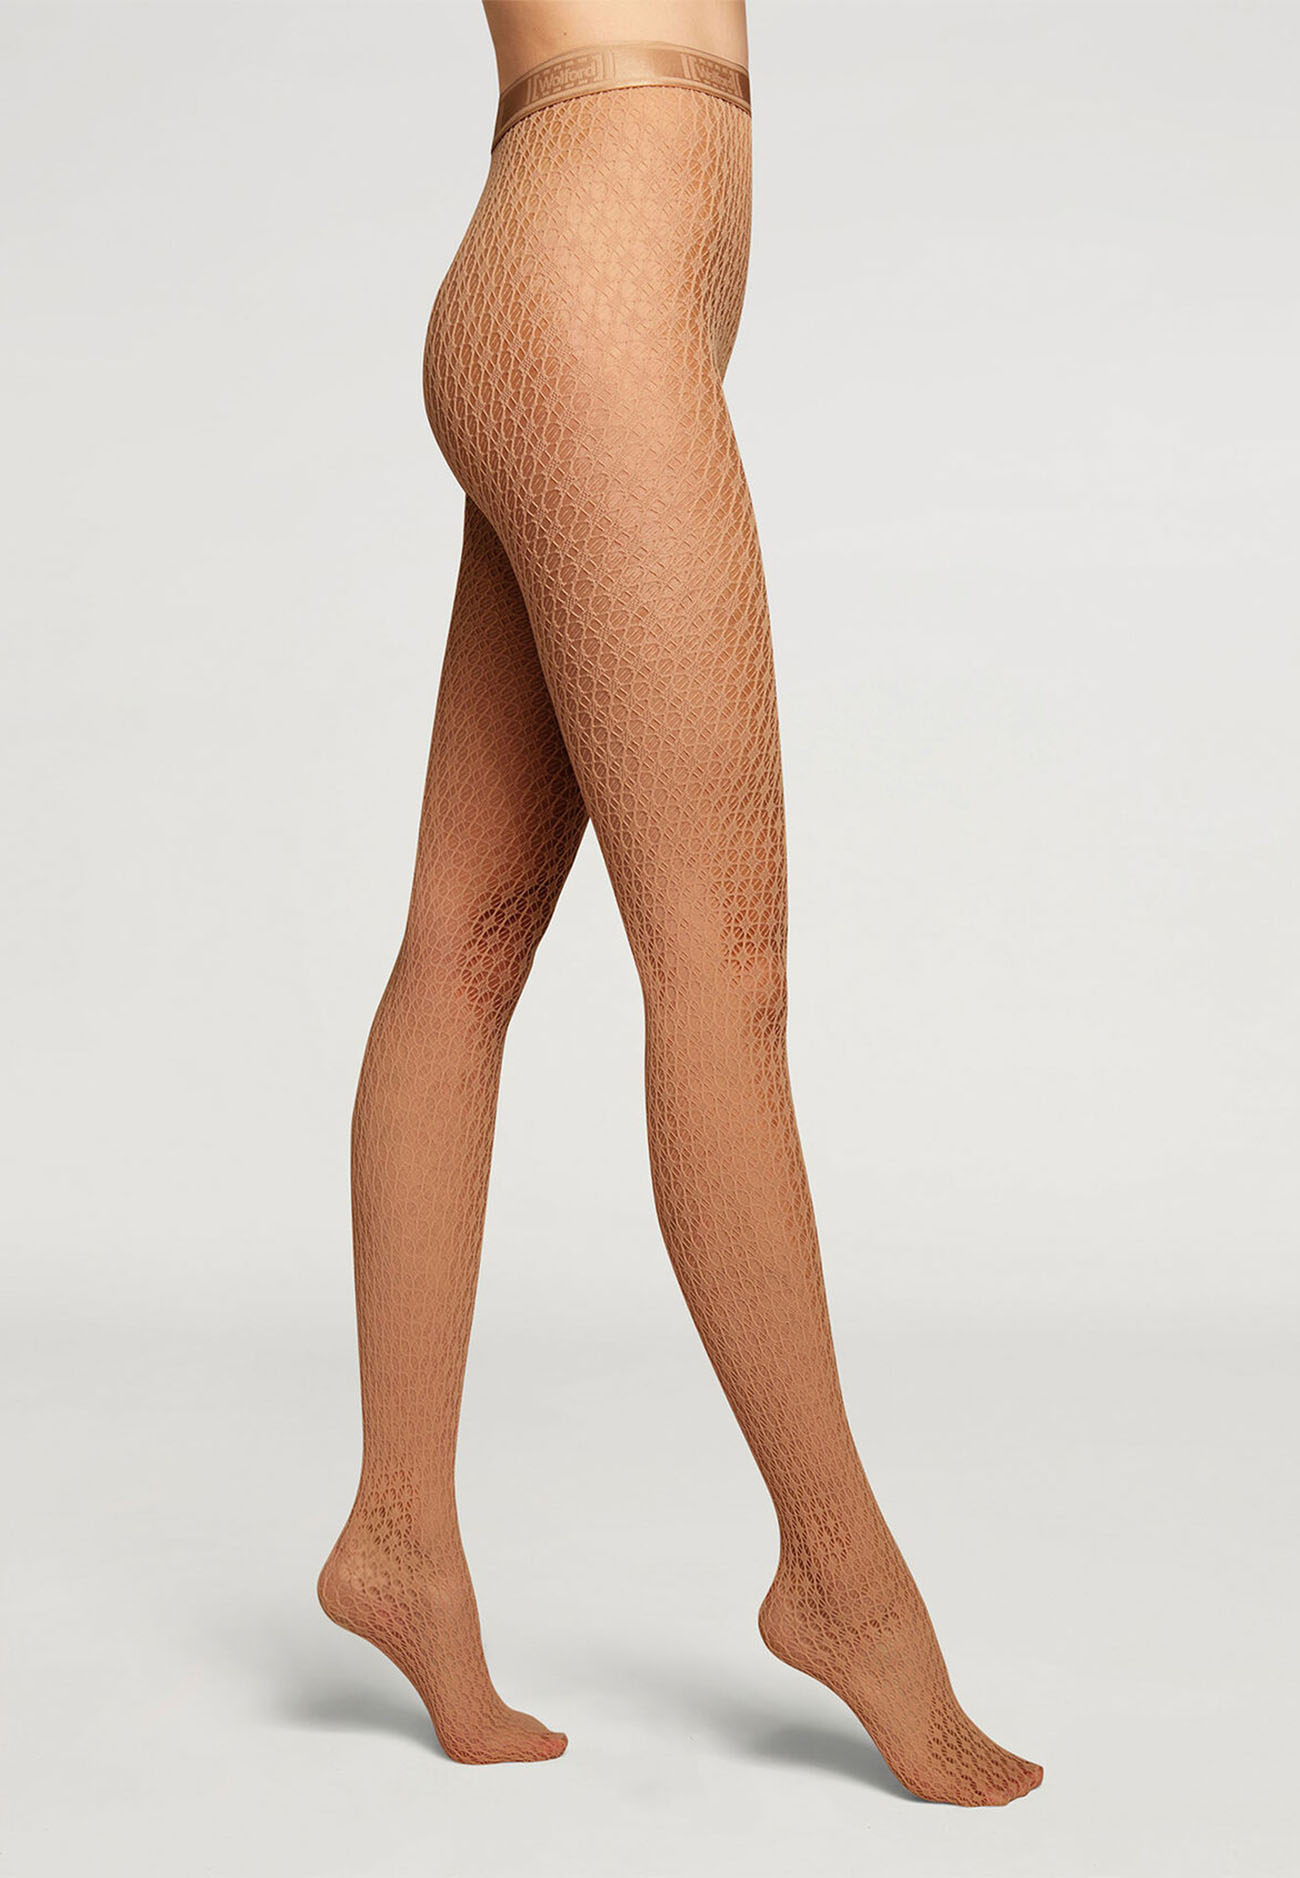 19320 Annelle Tights